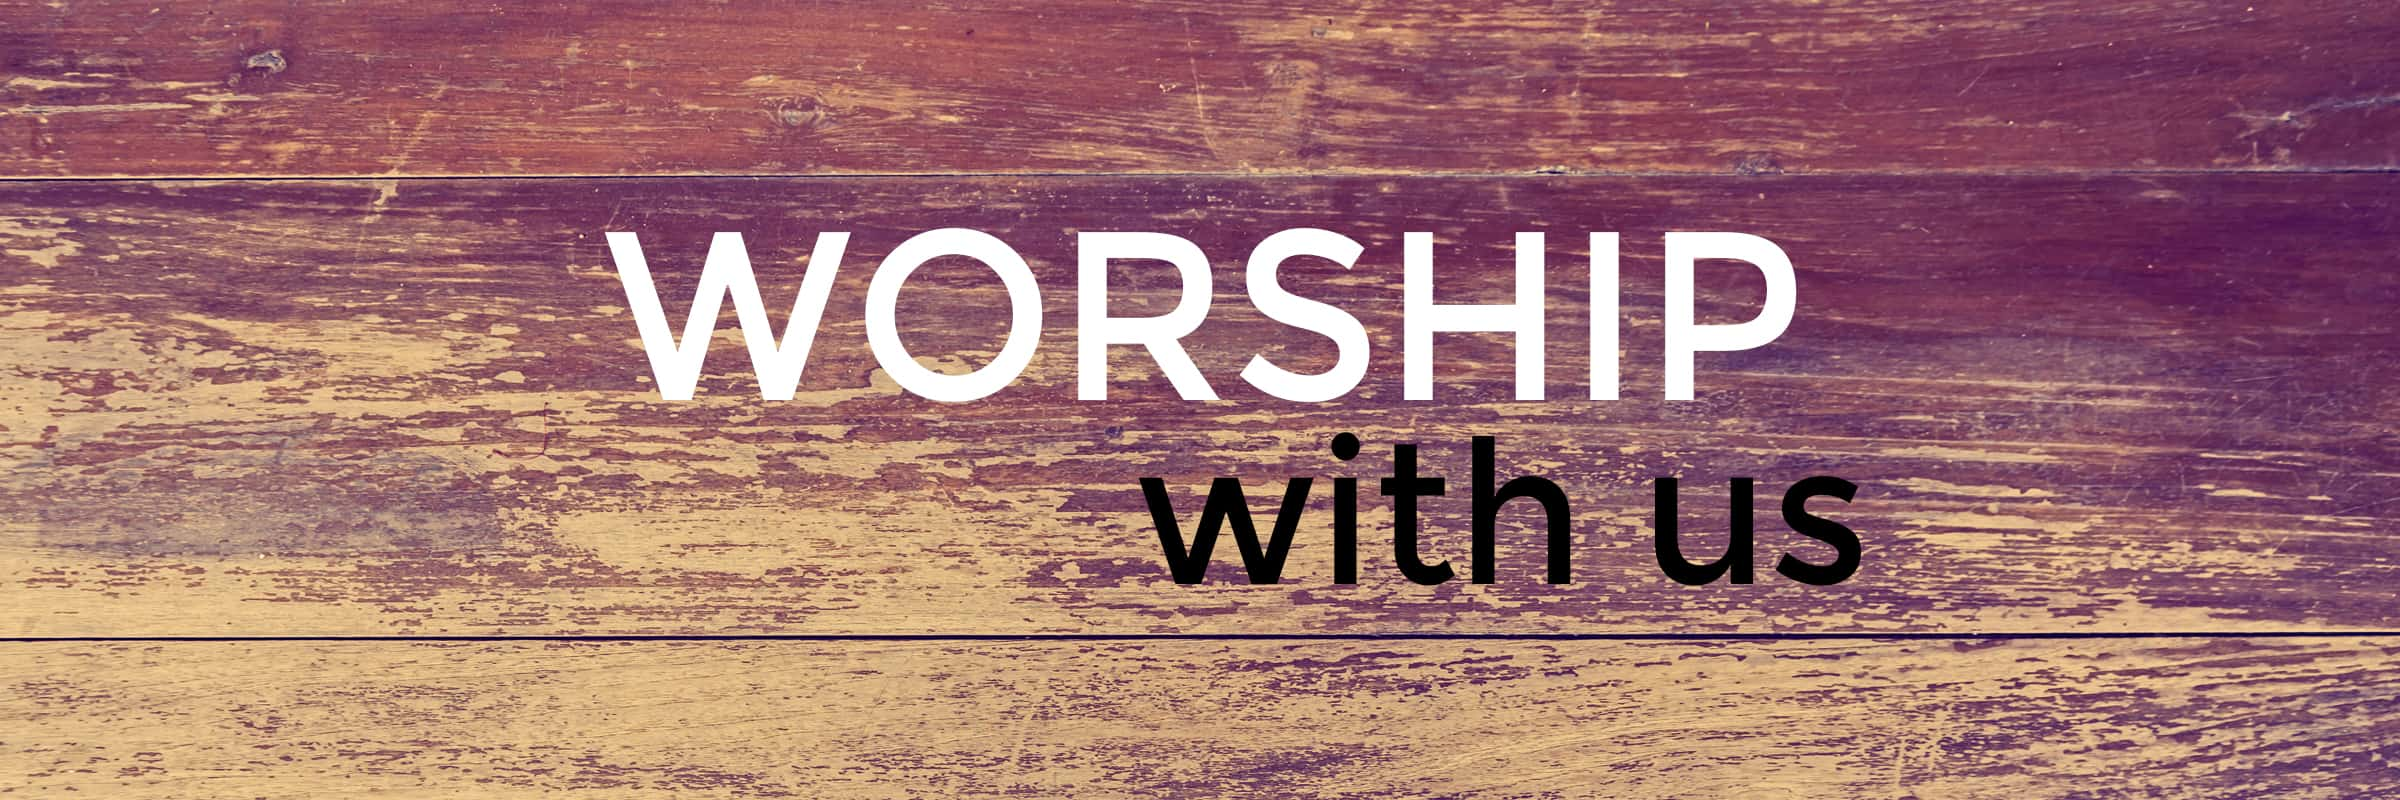 Greater Chicago Church - Worship With Us